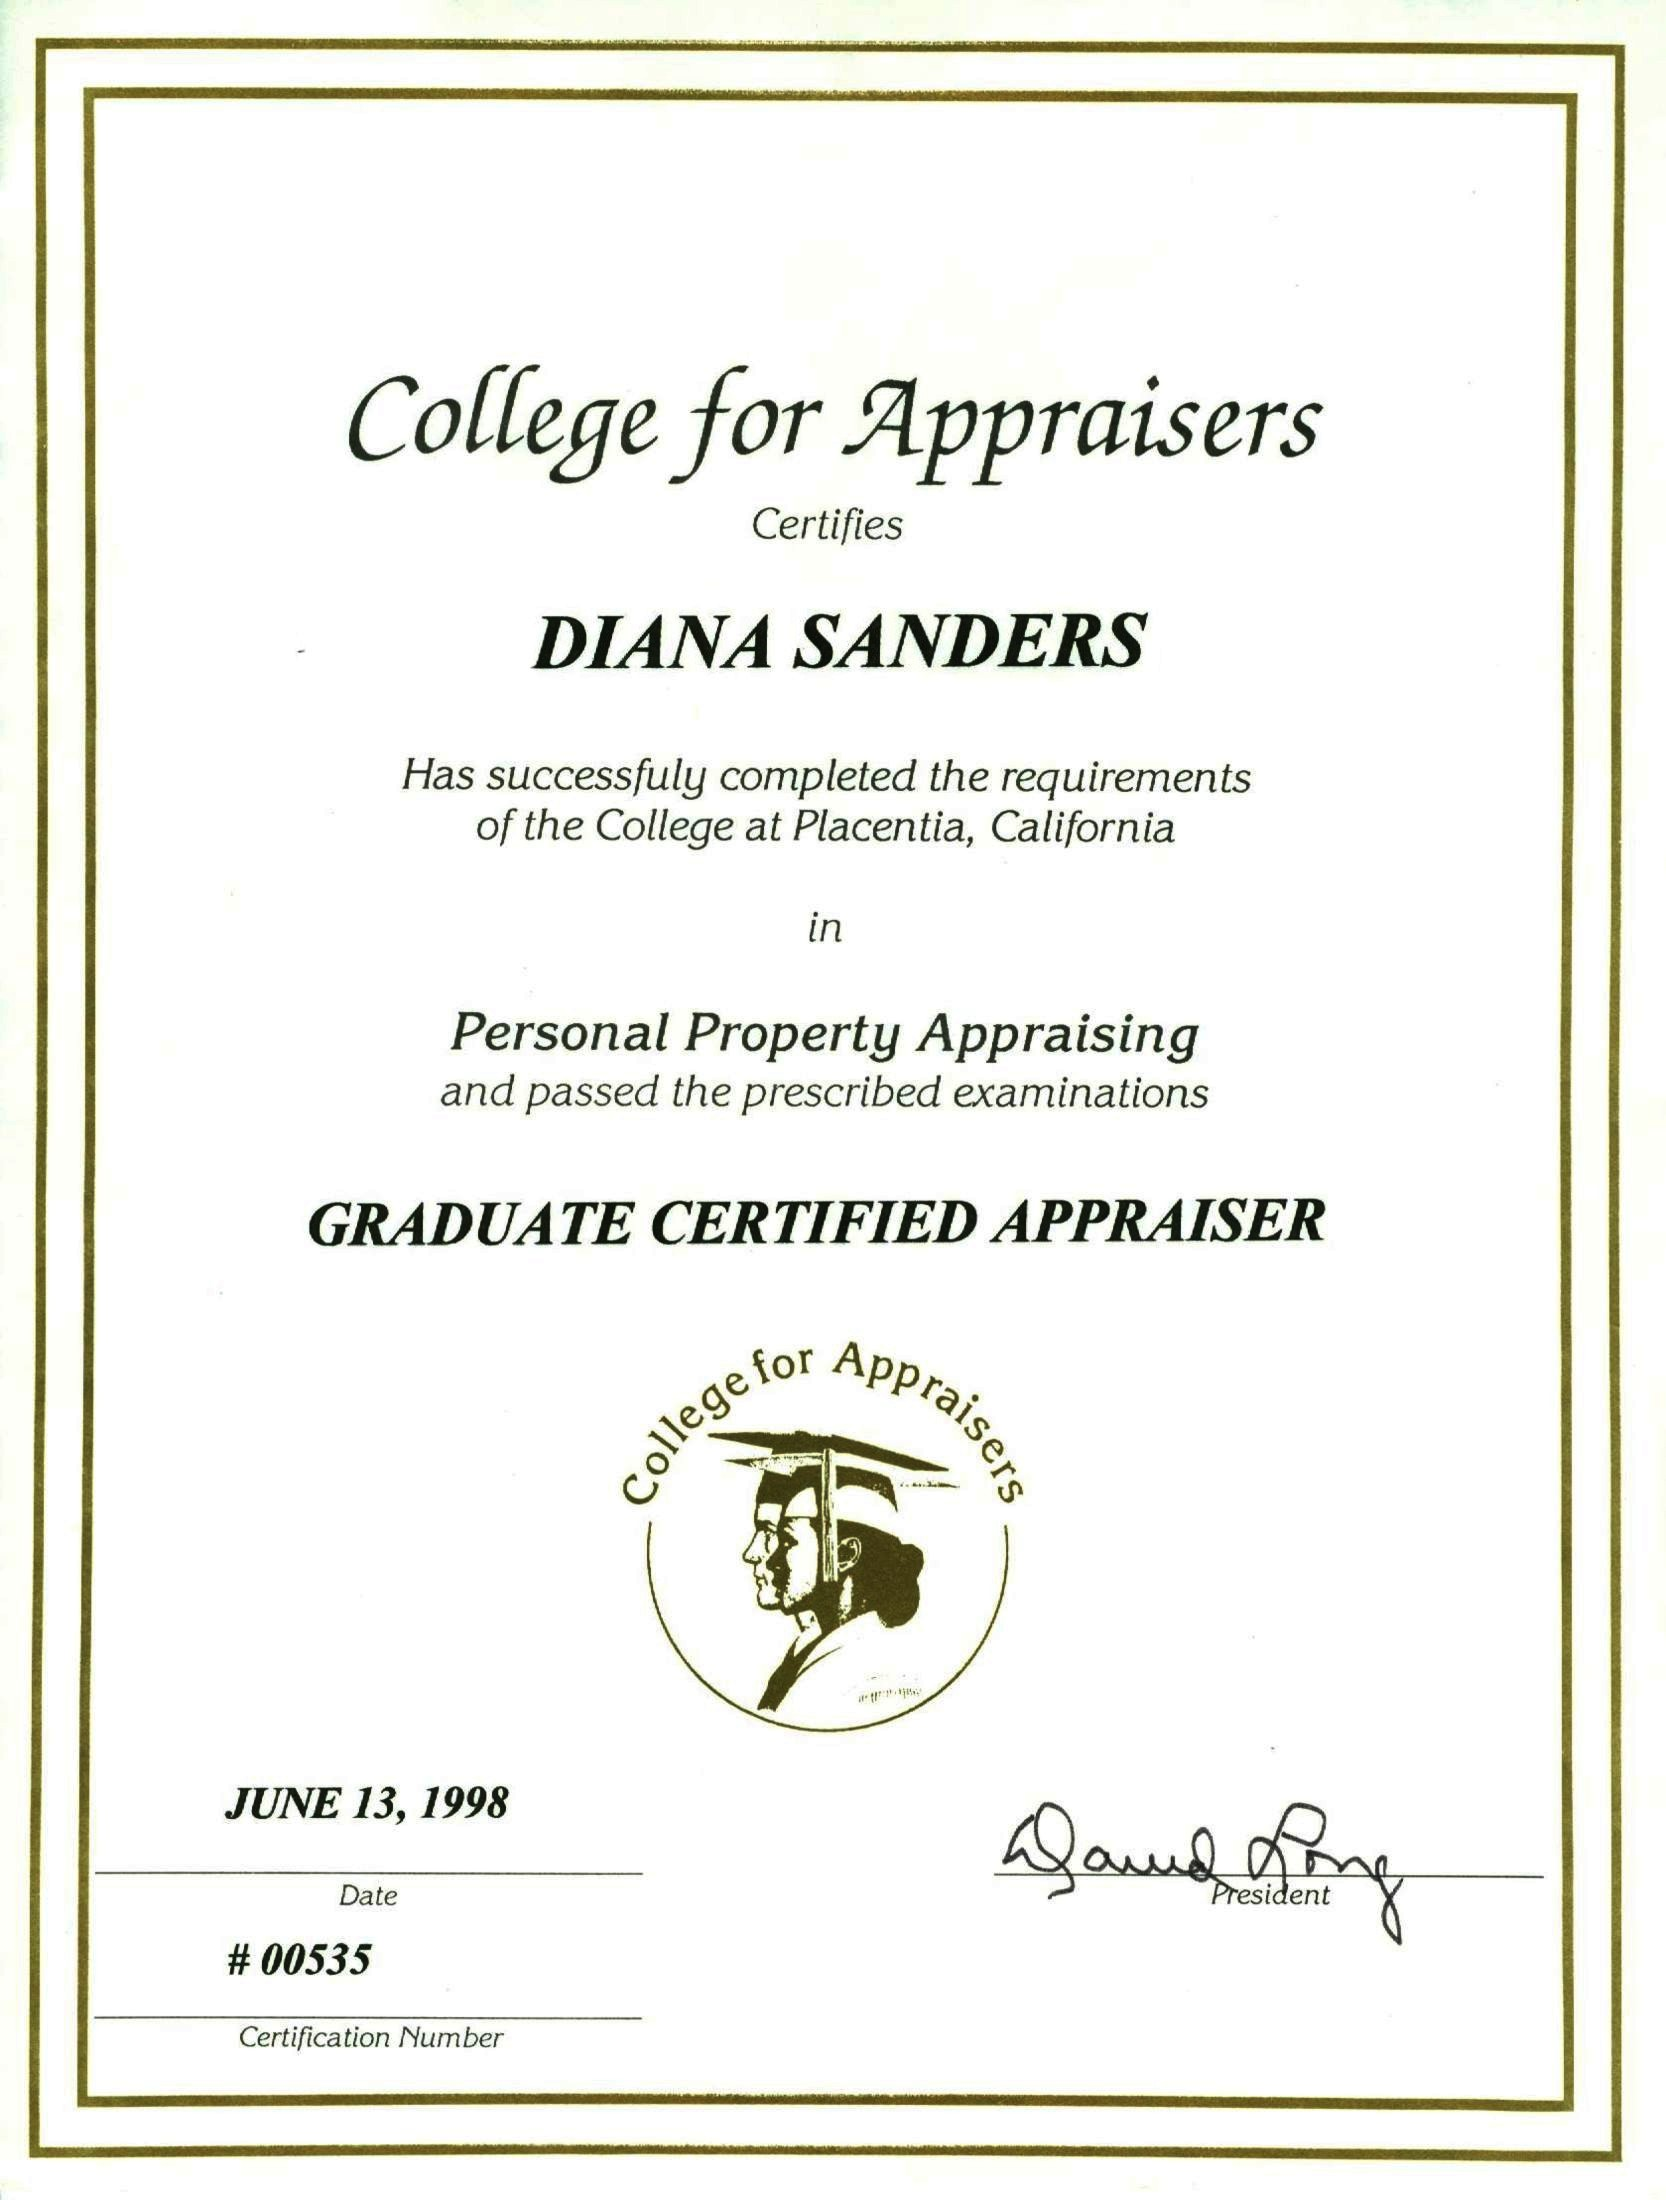 College for Appraisers, Graduate Certified Appraiser